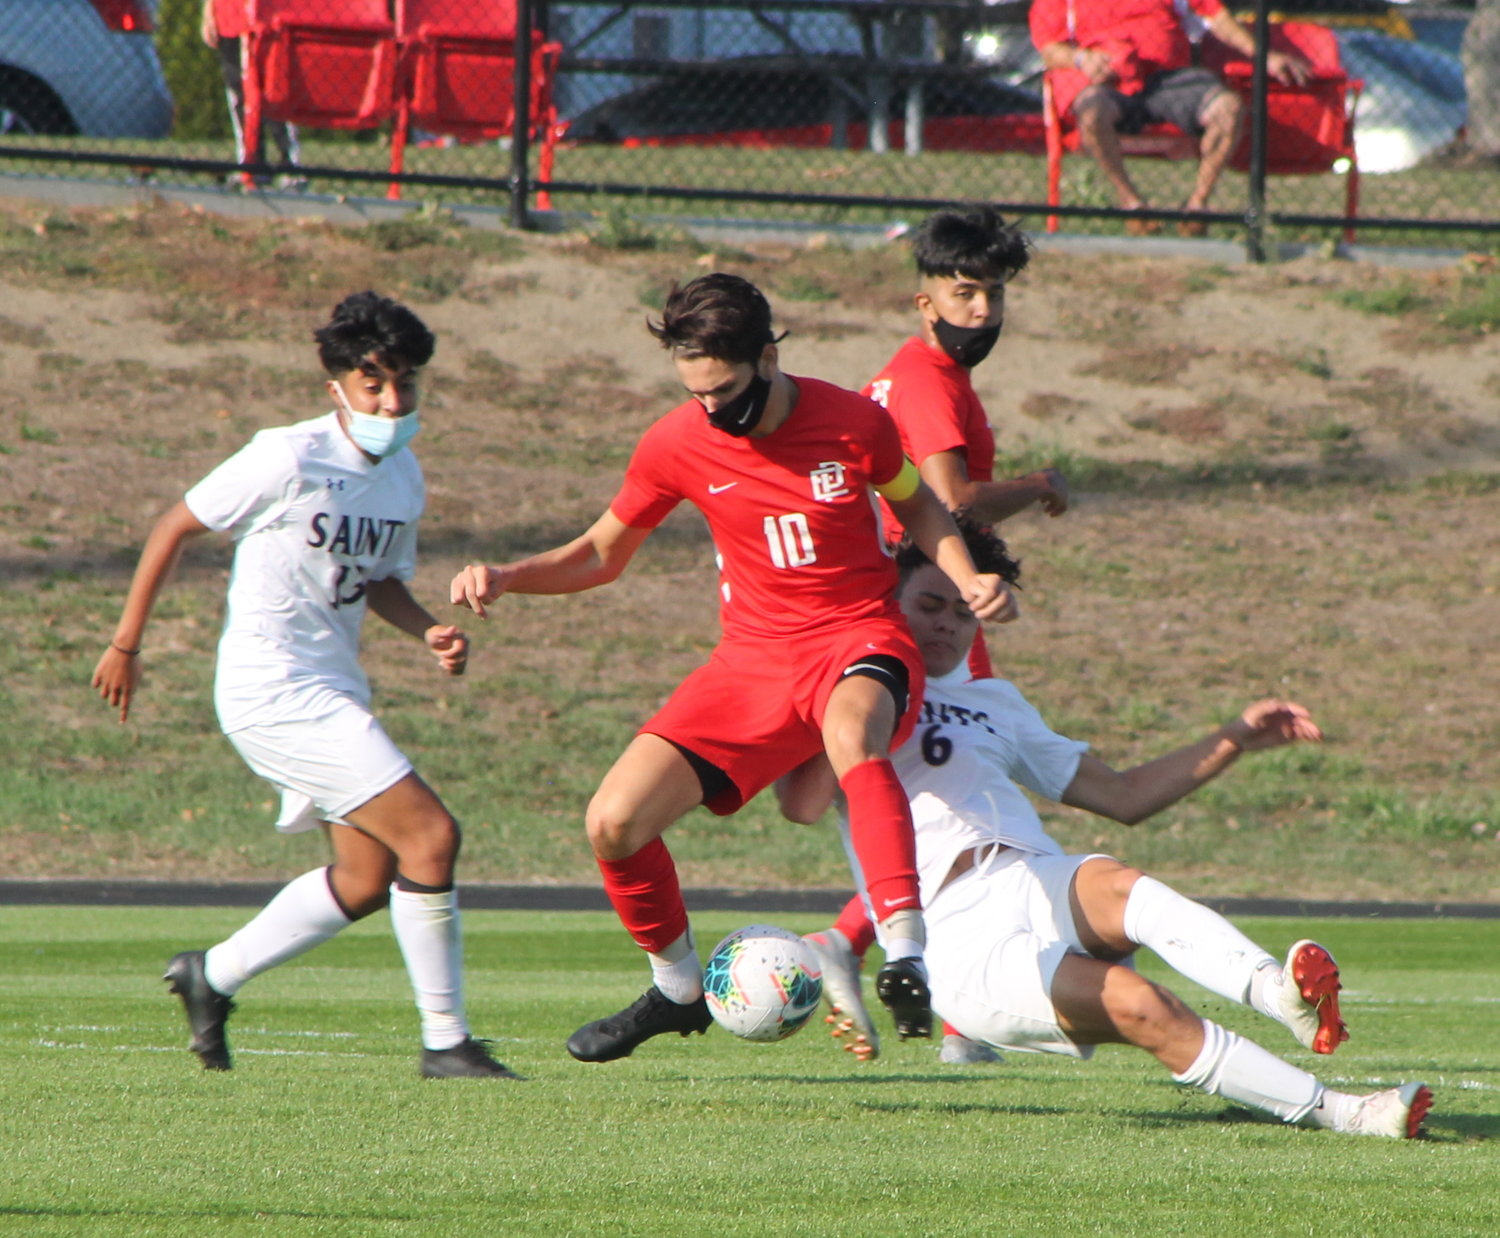 EPHS senior captain Colin Capelo dribbles in traffic against St. Raphael players during the teams' season opening Division I boys' soccer outing Saturday, Oct. 10.